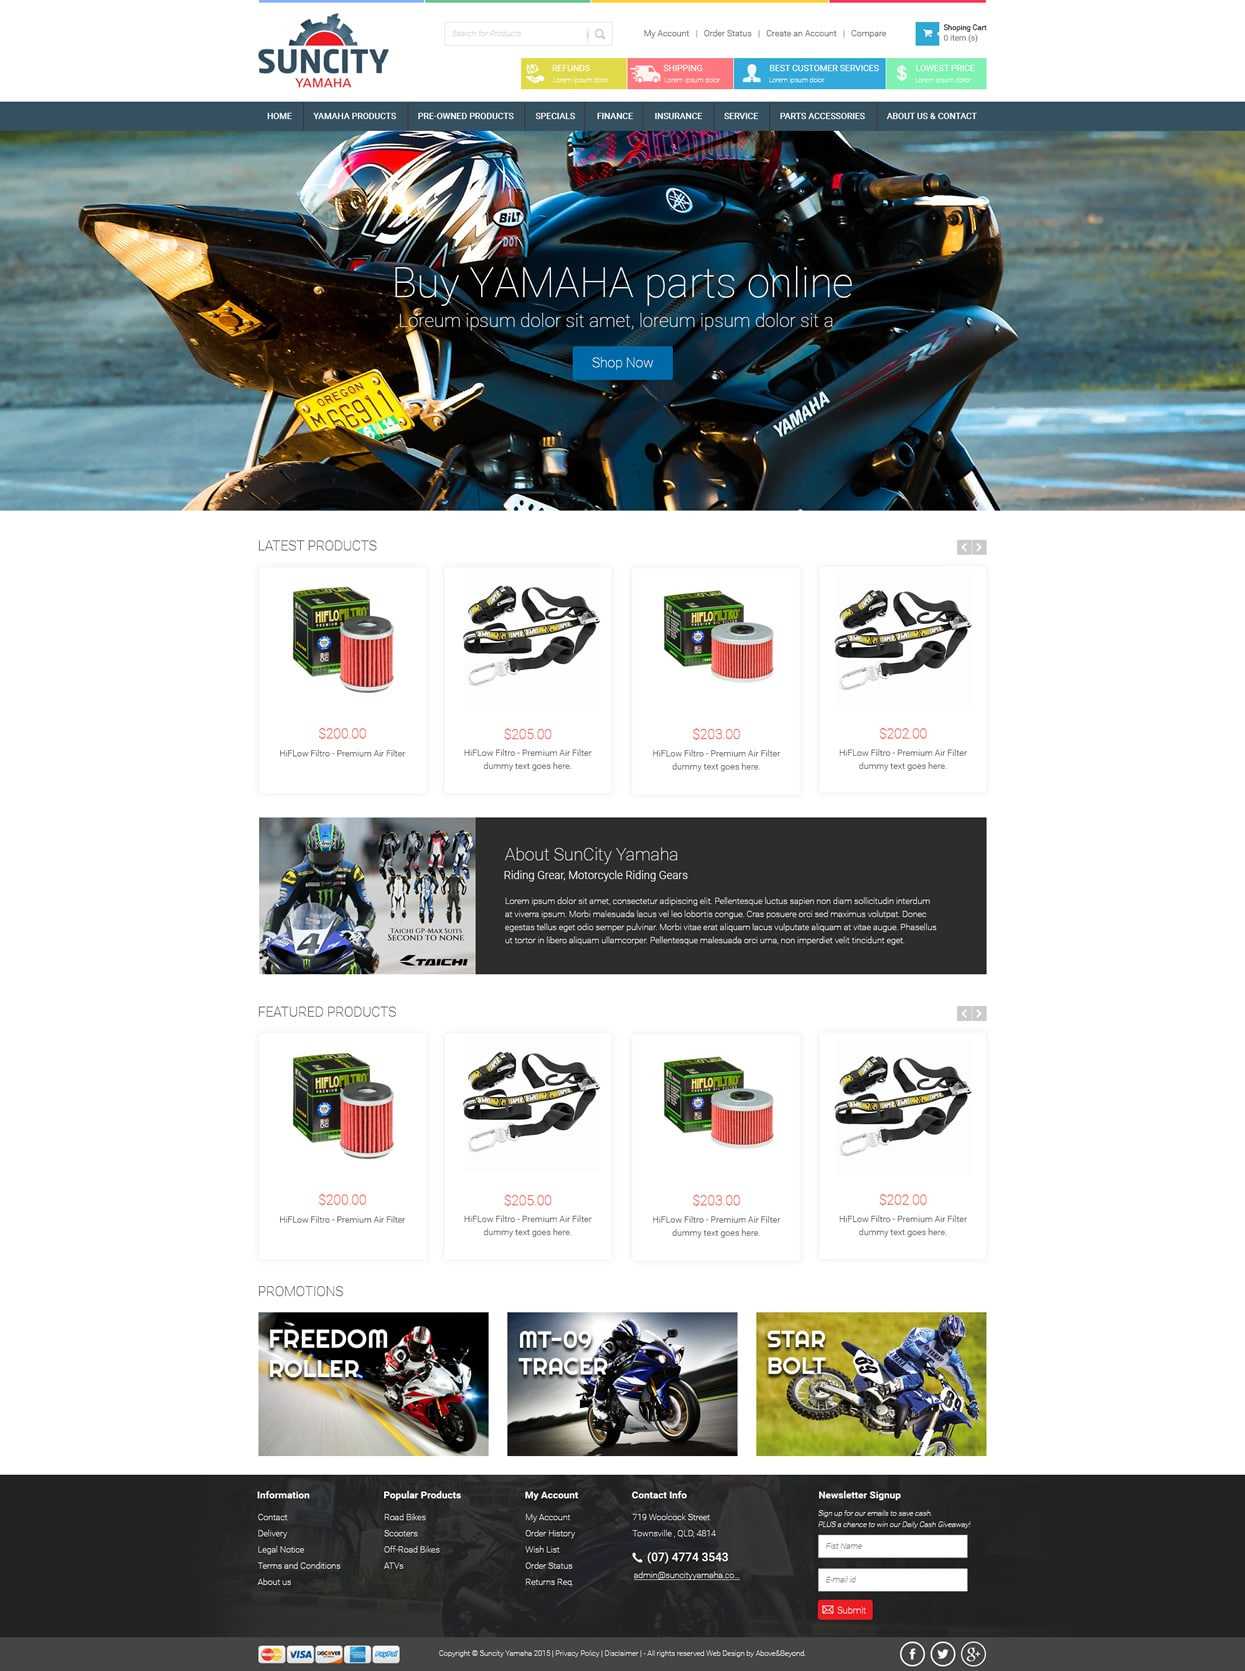 SunCity Yamaha Website design